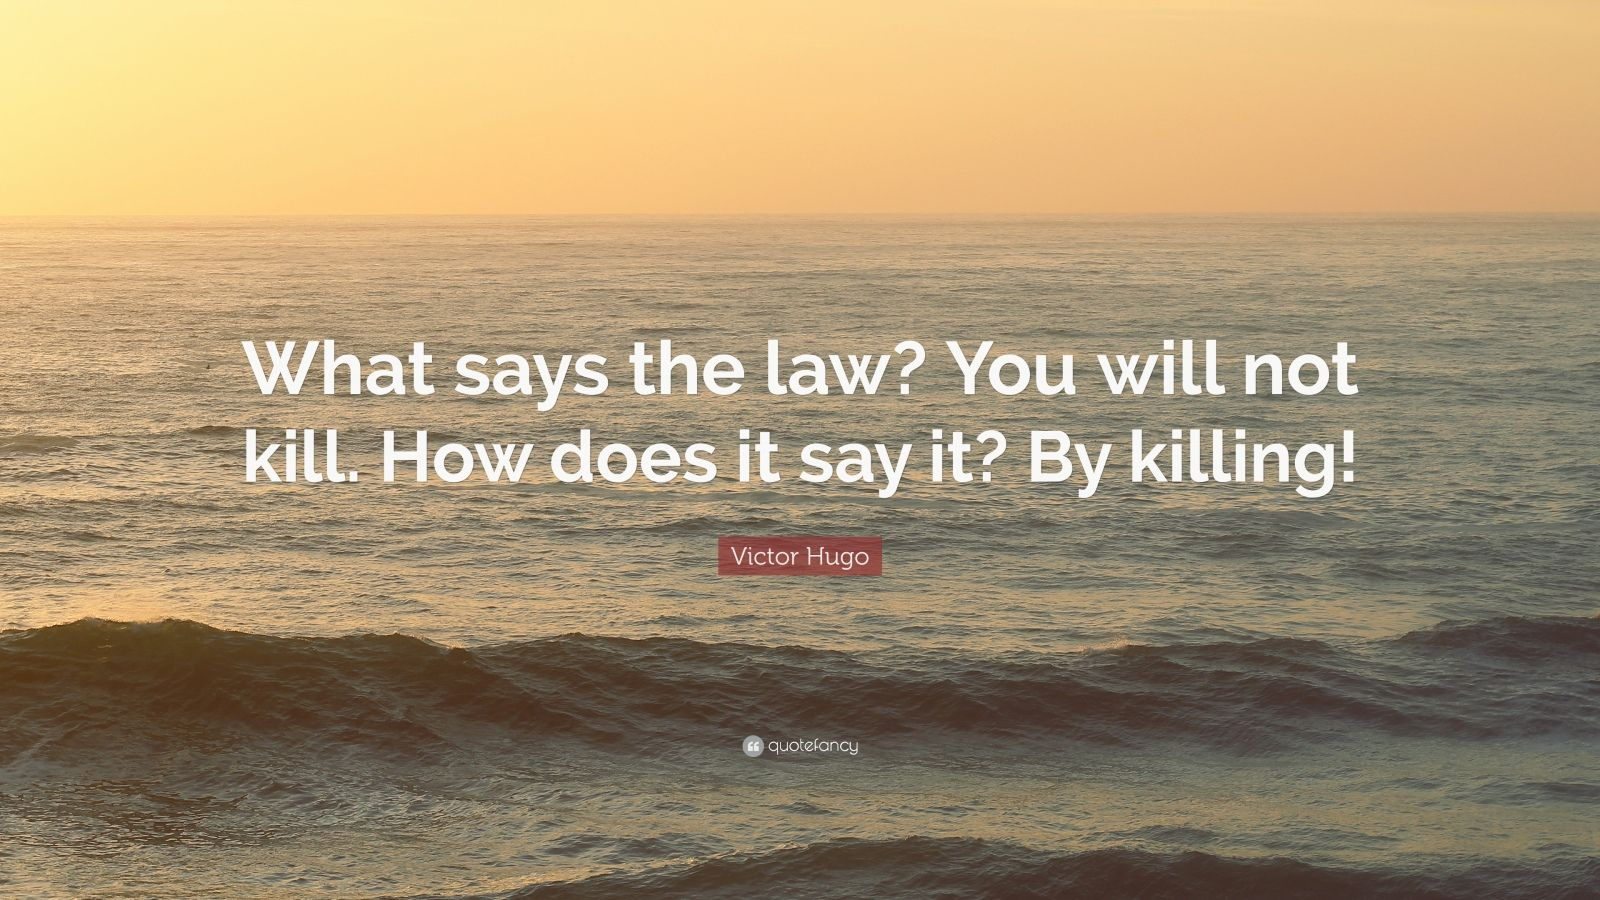 """Victor Hugo Quote: """"What says the law? You will not kill. How does it say it? By killing!"""""""